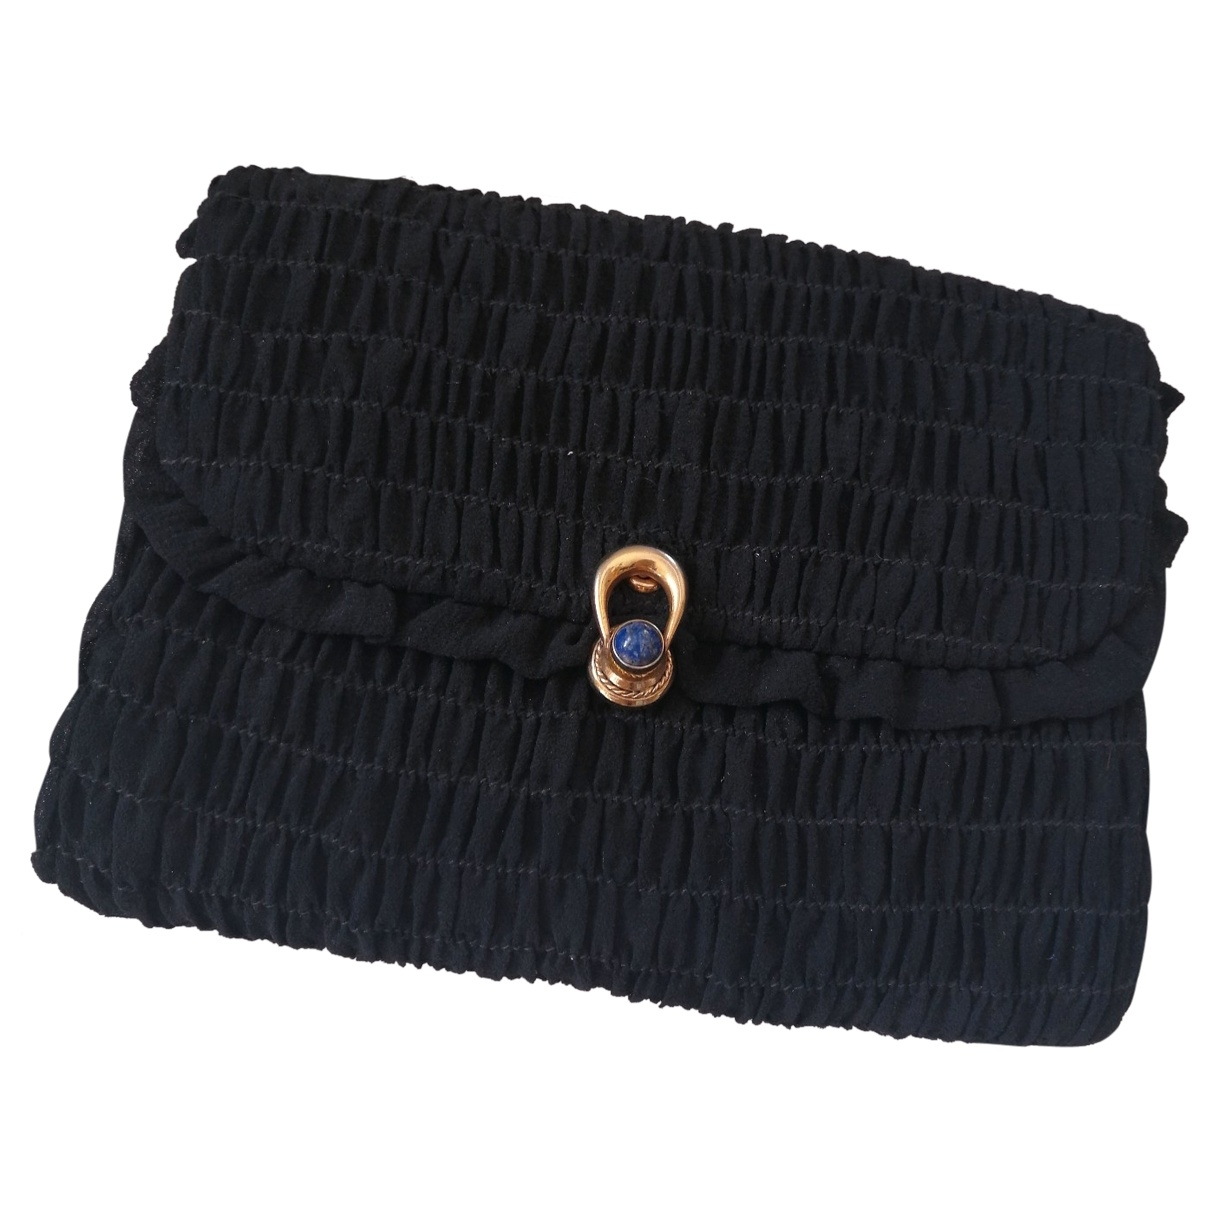 Gucci \N Black Cotton Clutch bag for Women \N